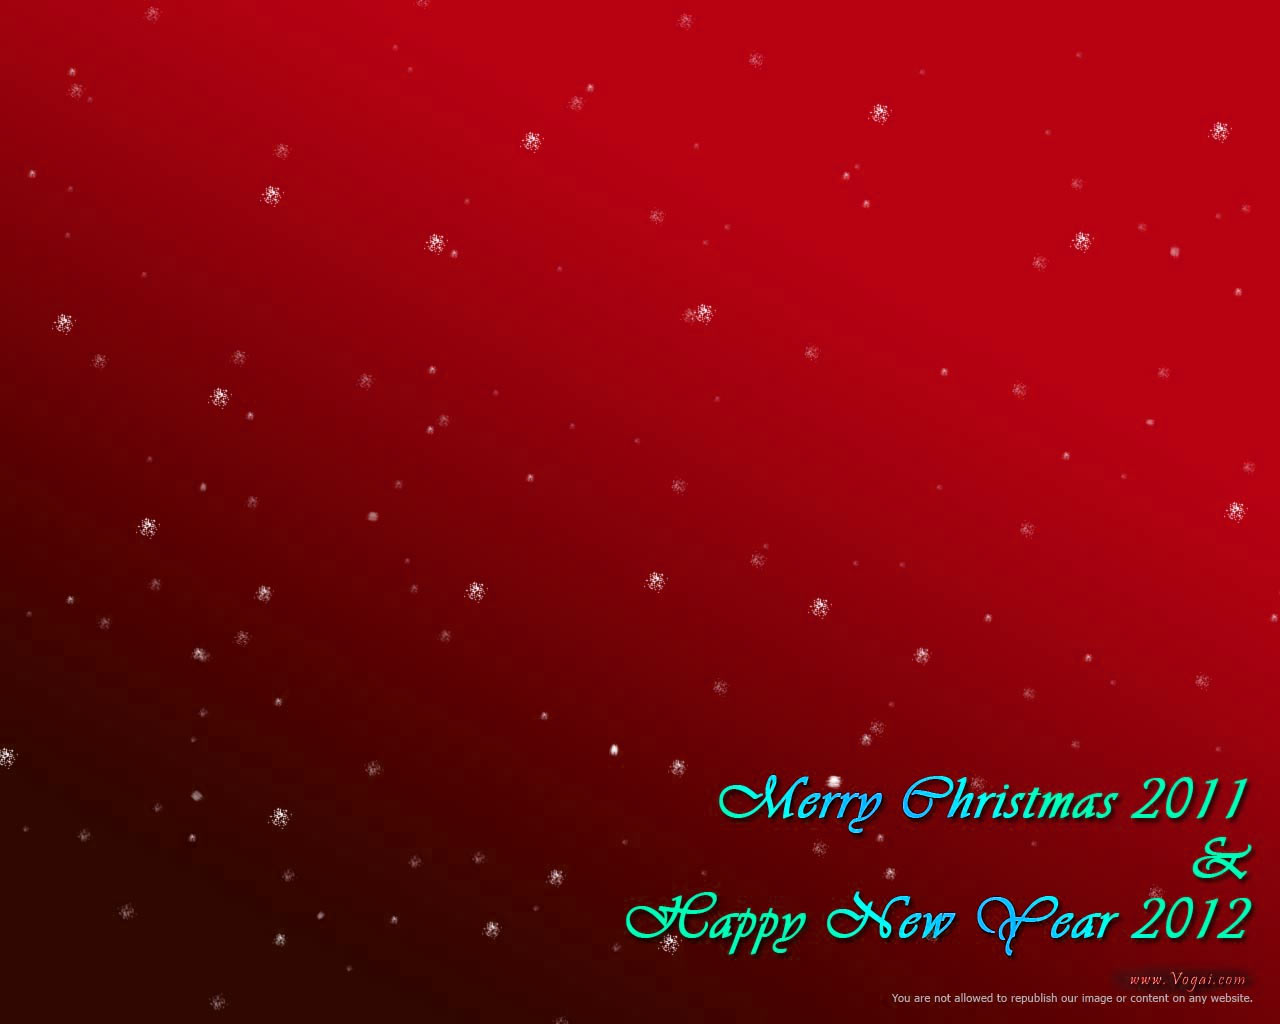 merry christmas 2011 and happy new year 2012